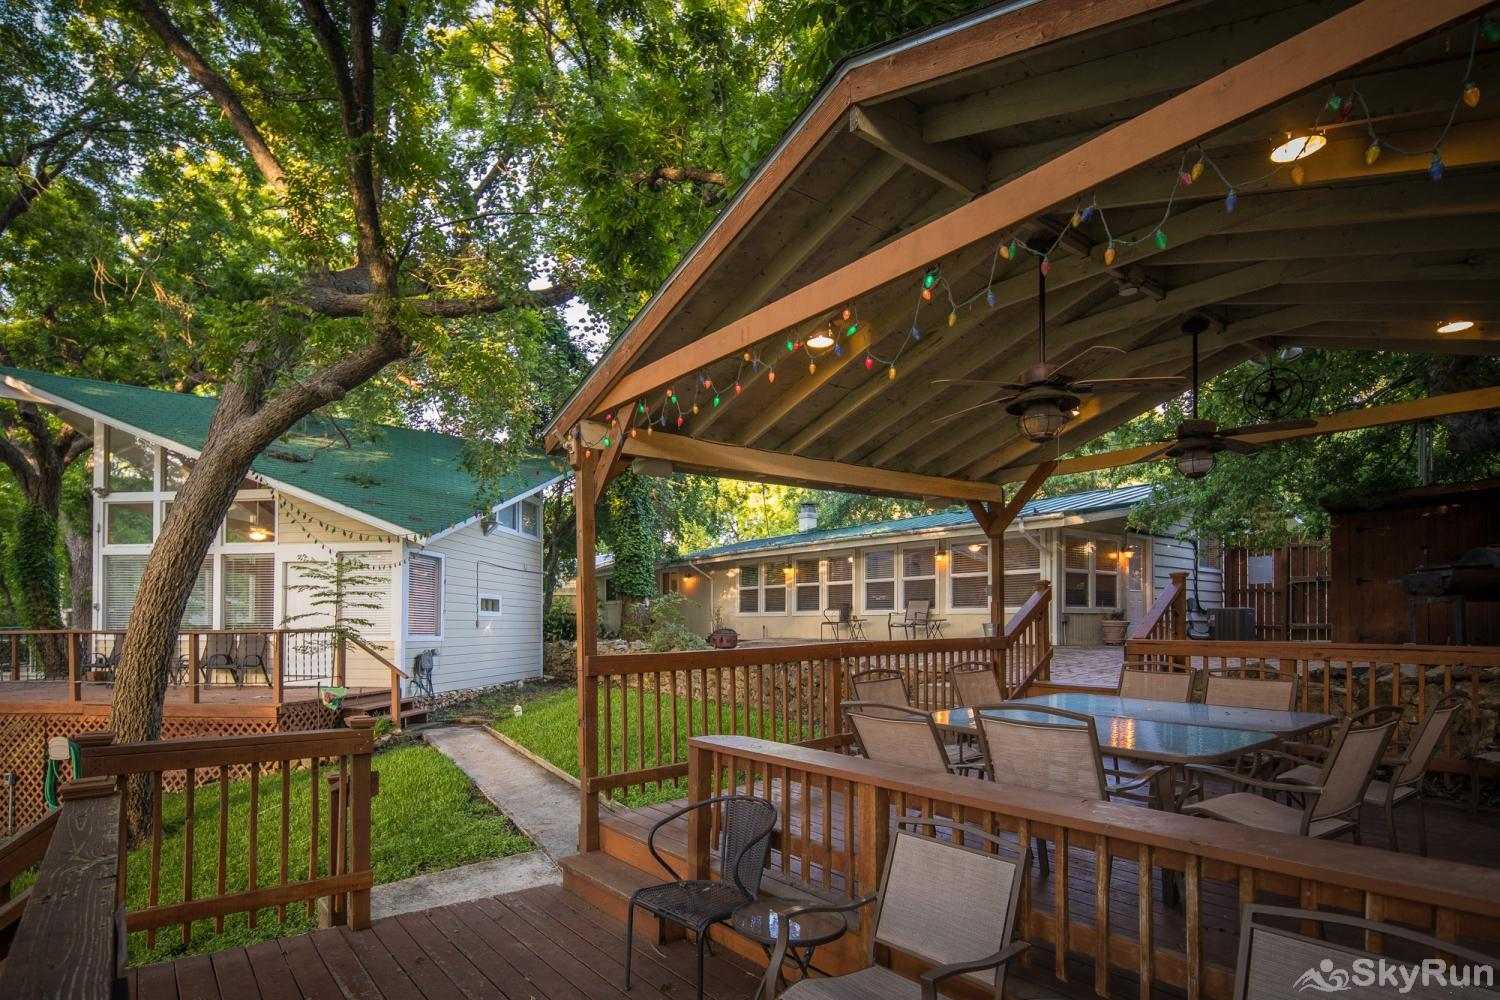 STAR OF TEXAS AND COTTAGE COMBO Shaded gazebo and backyard cottage